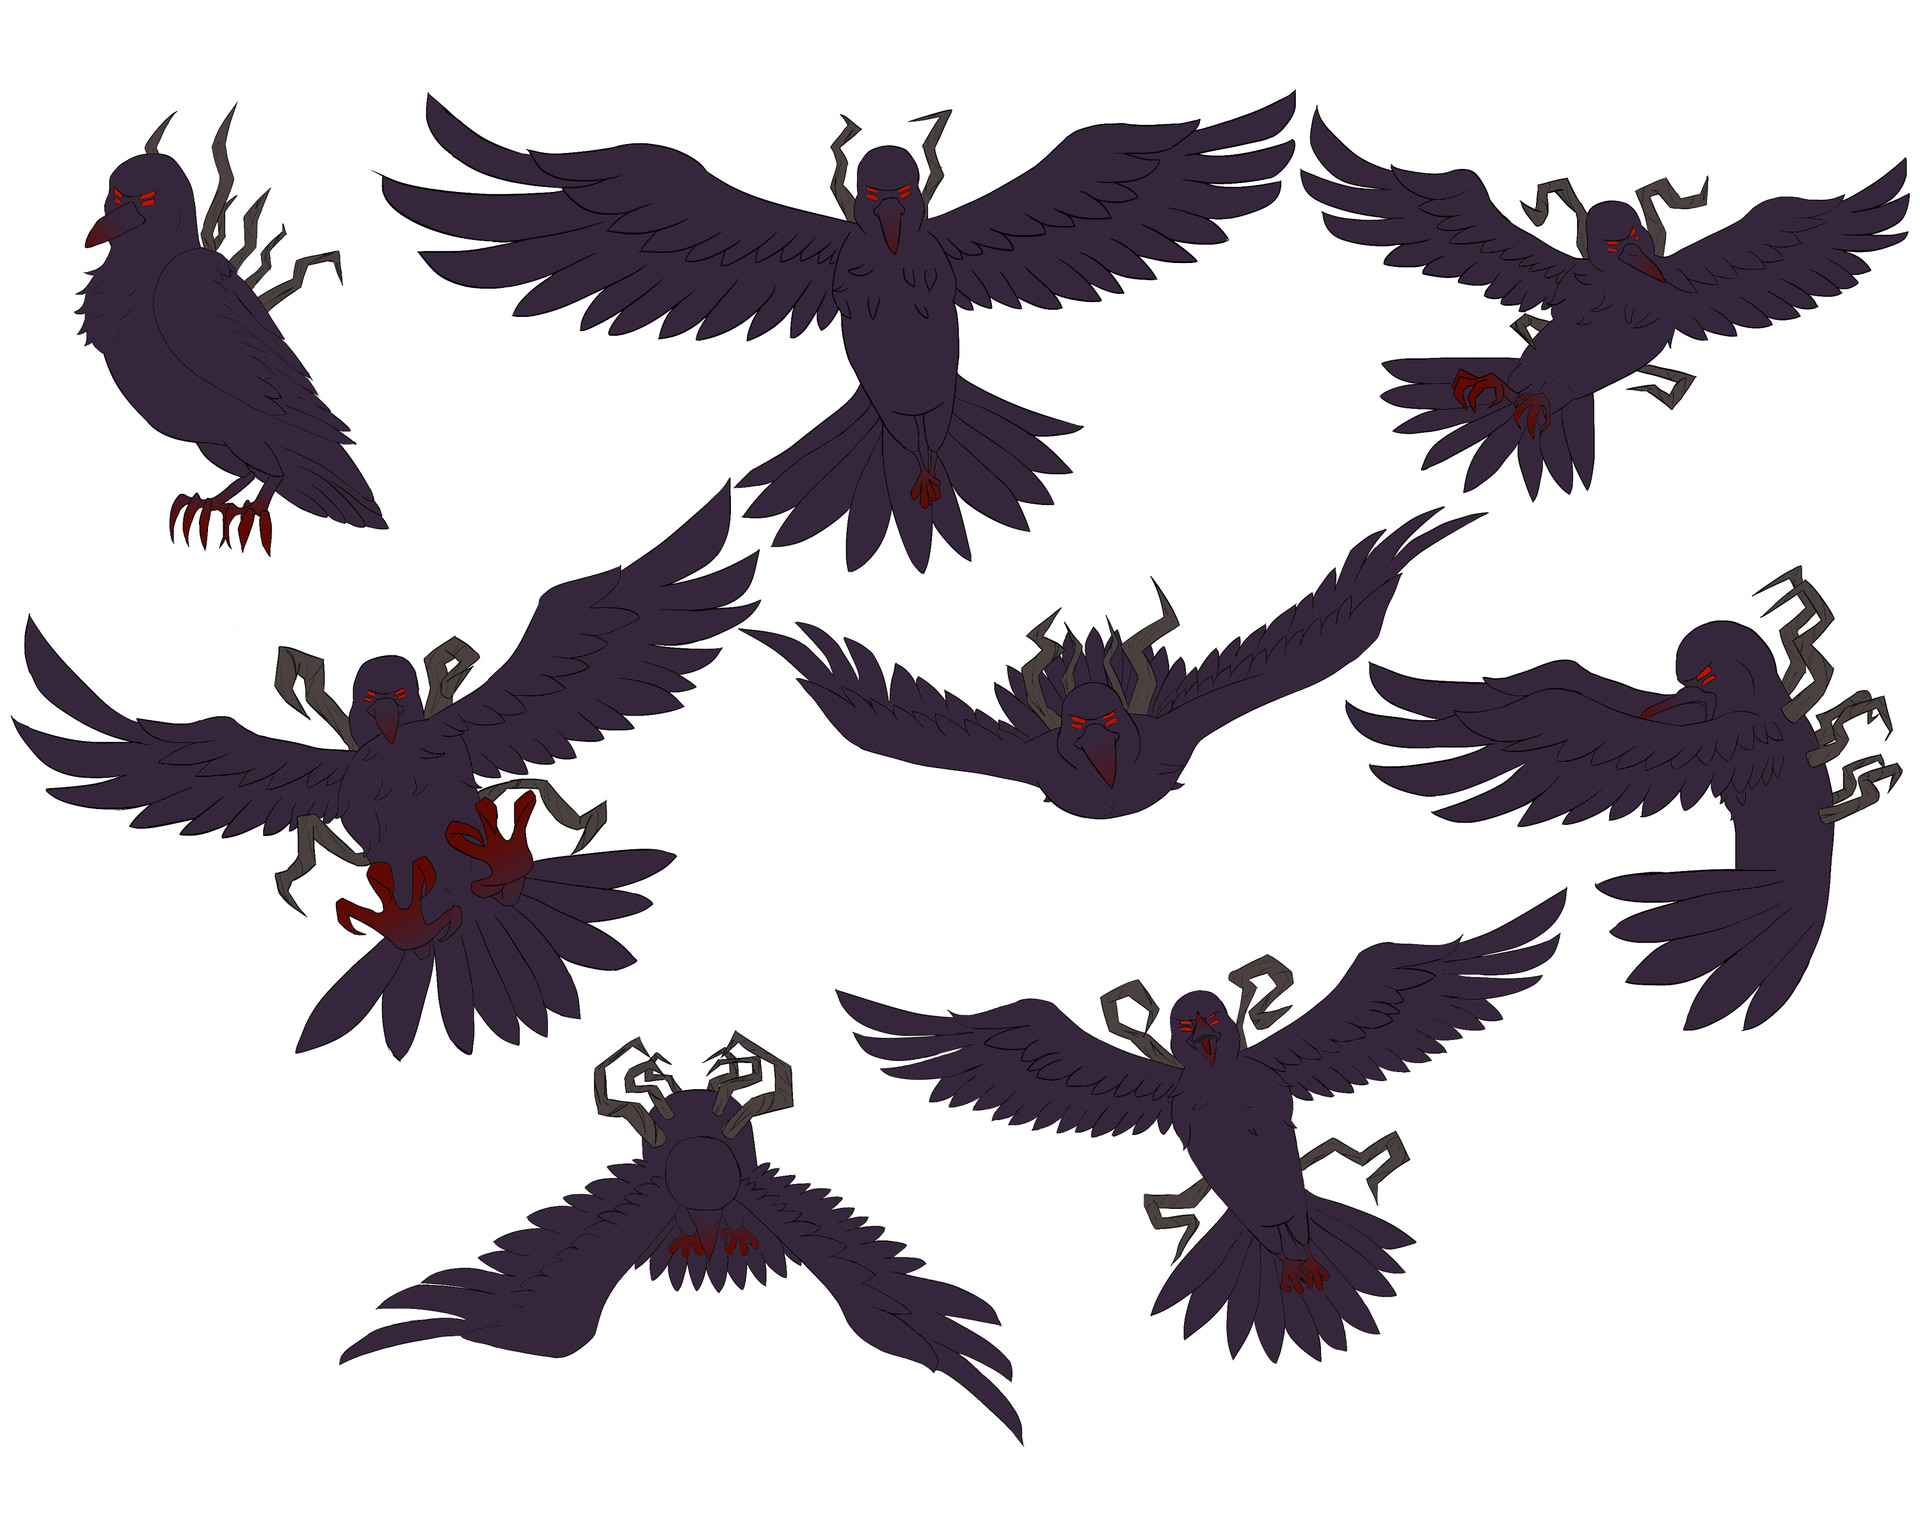 Josue canales demon crow action poses